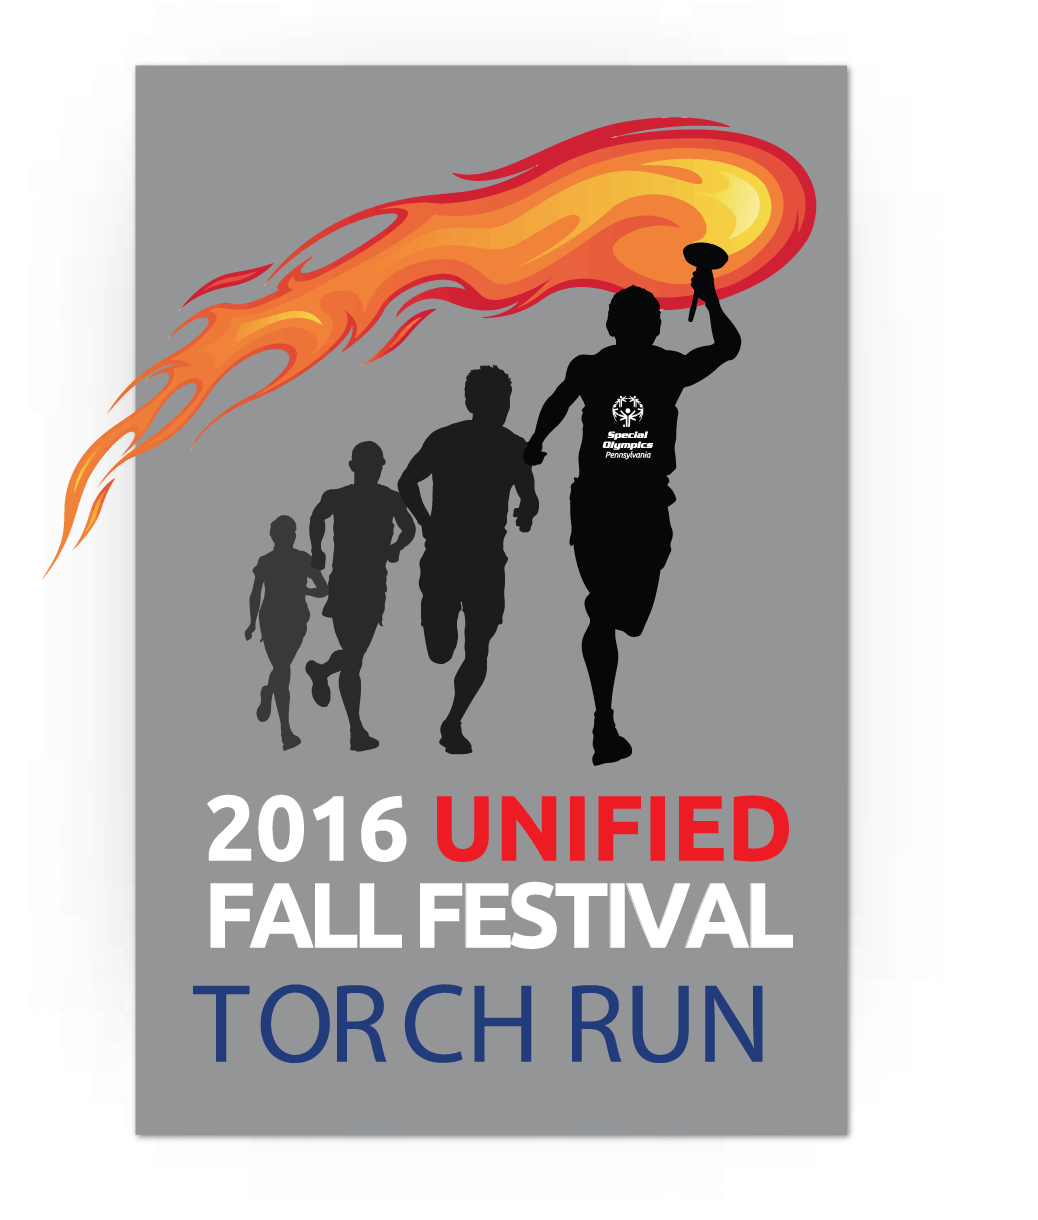 unified-fall-fest-torch-run-logo